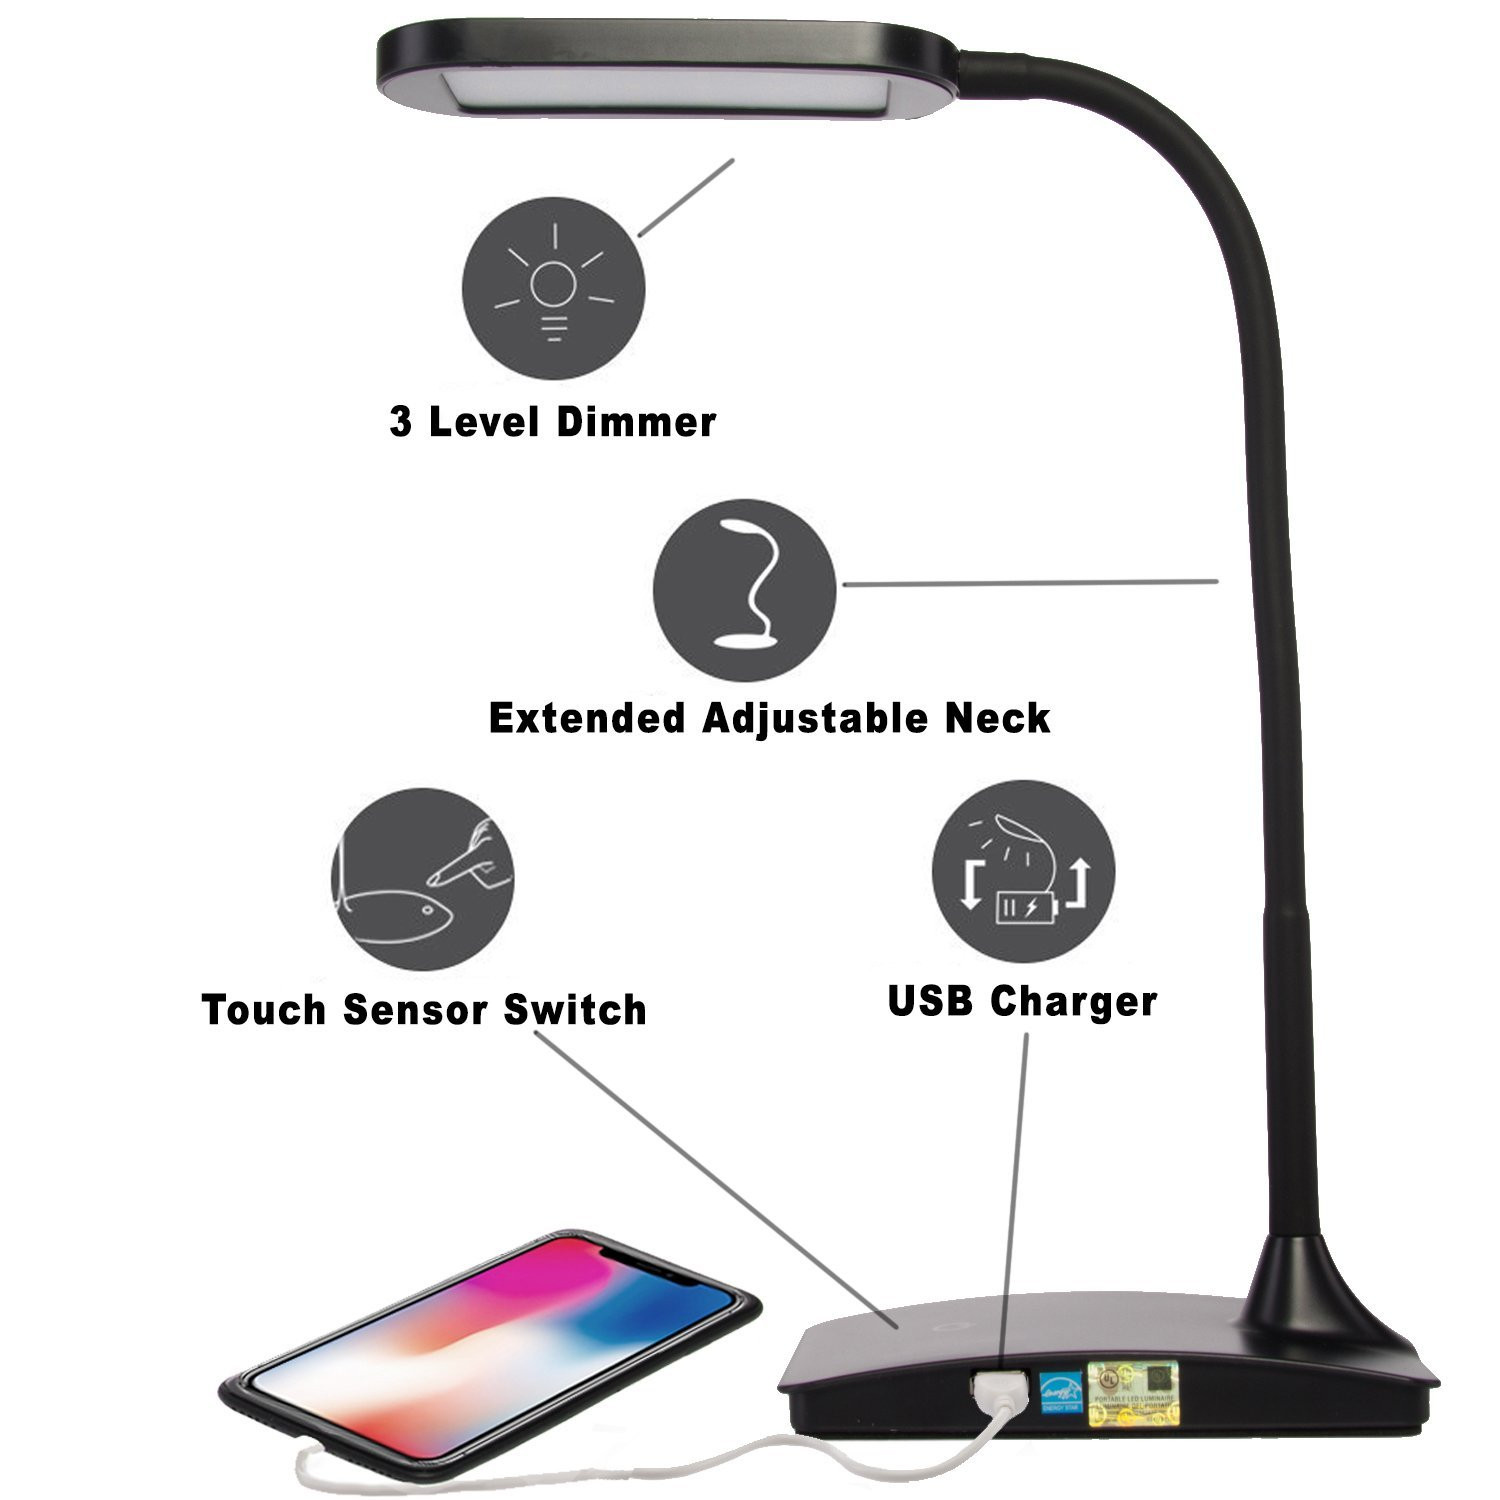 Best ideas about Ivy Led Usb Desk Lamp . Save or Pin TW Lighting Wholesale IVY 40WT LED Desk Lamp with USB Port Now.